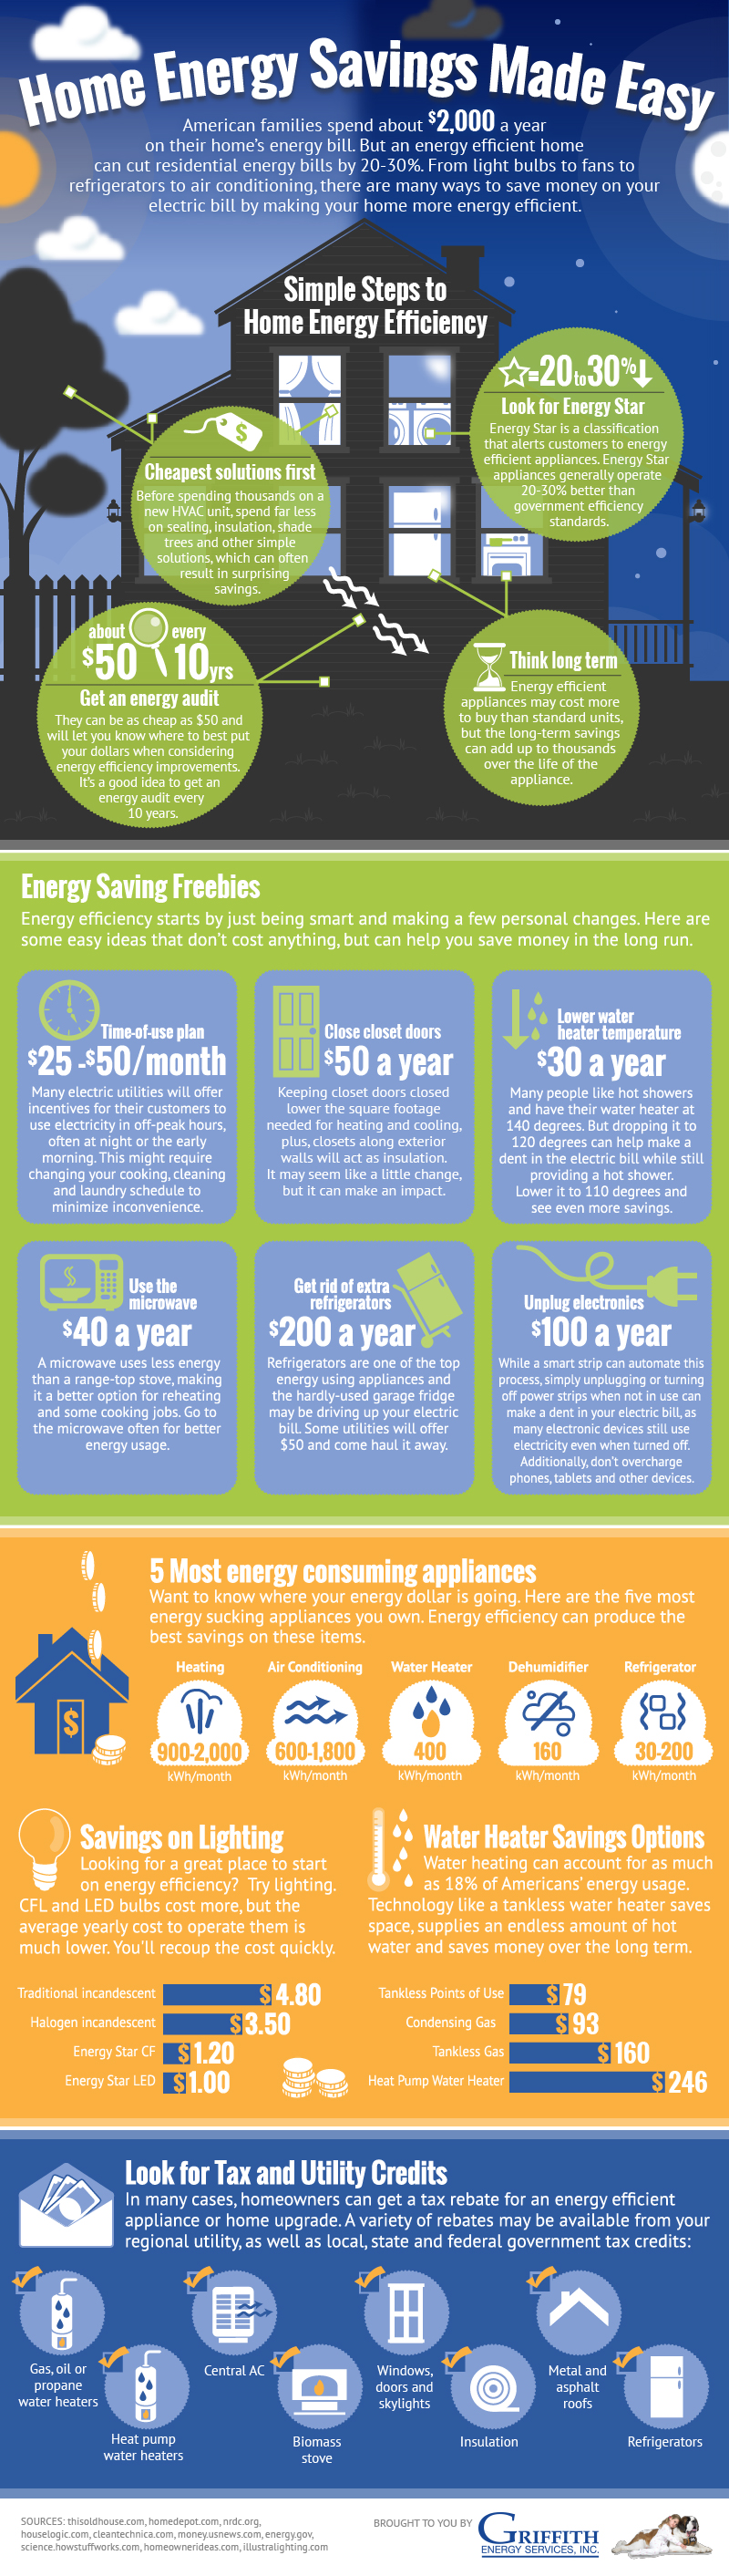 Energy savings ingographic